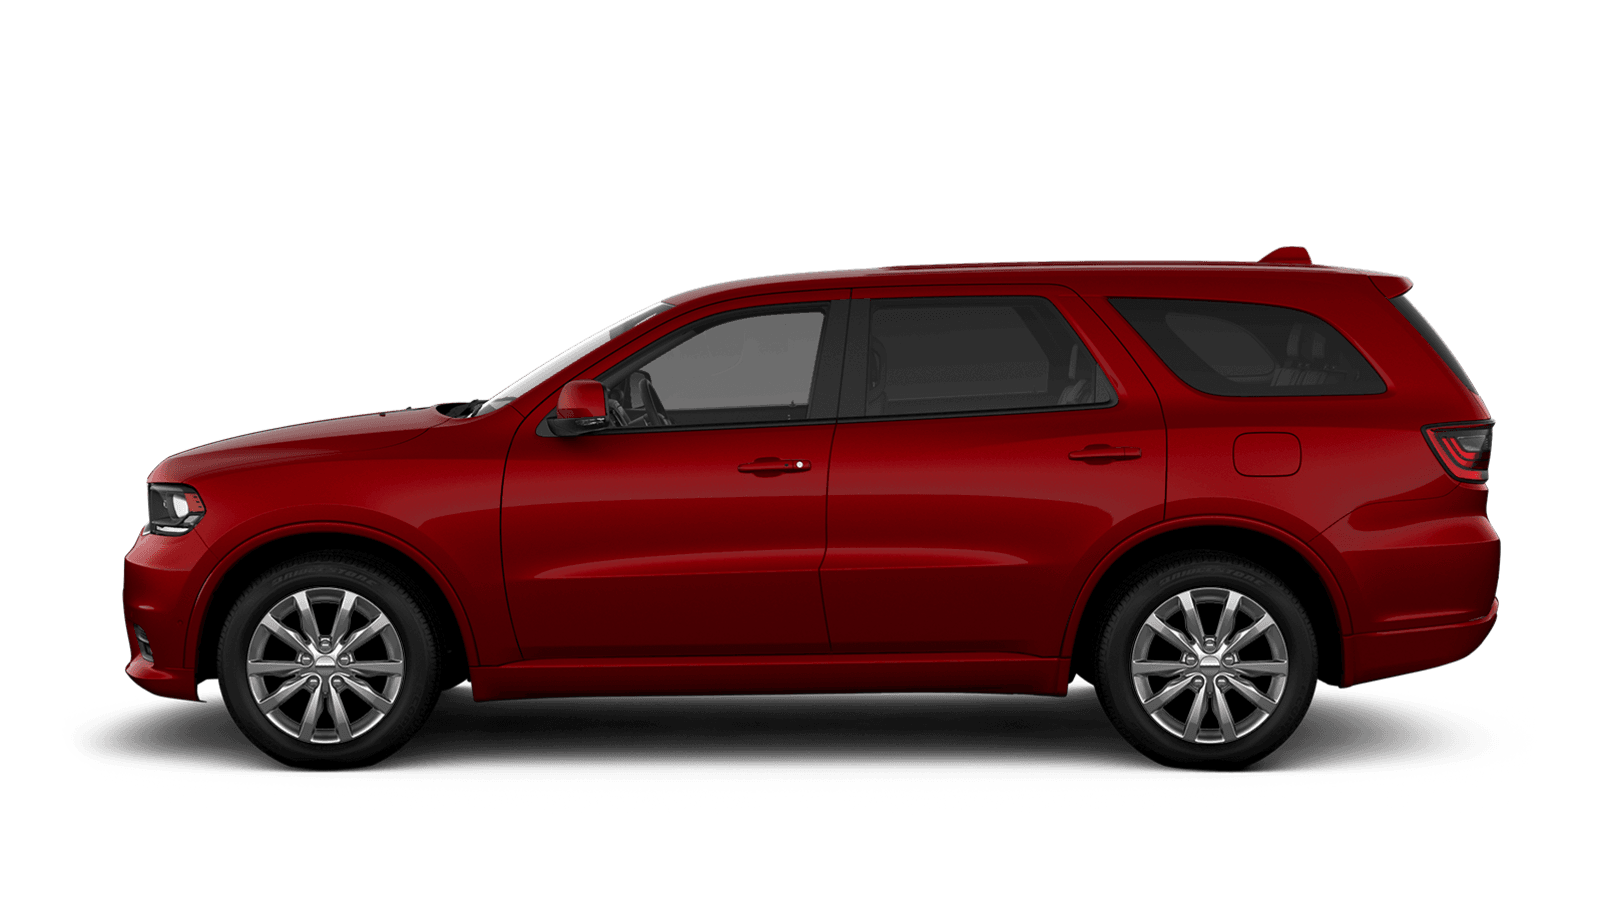 2019 Dodge Durango sideview with 18-inch aluminum wheels